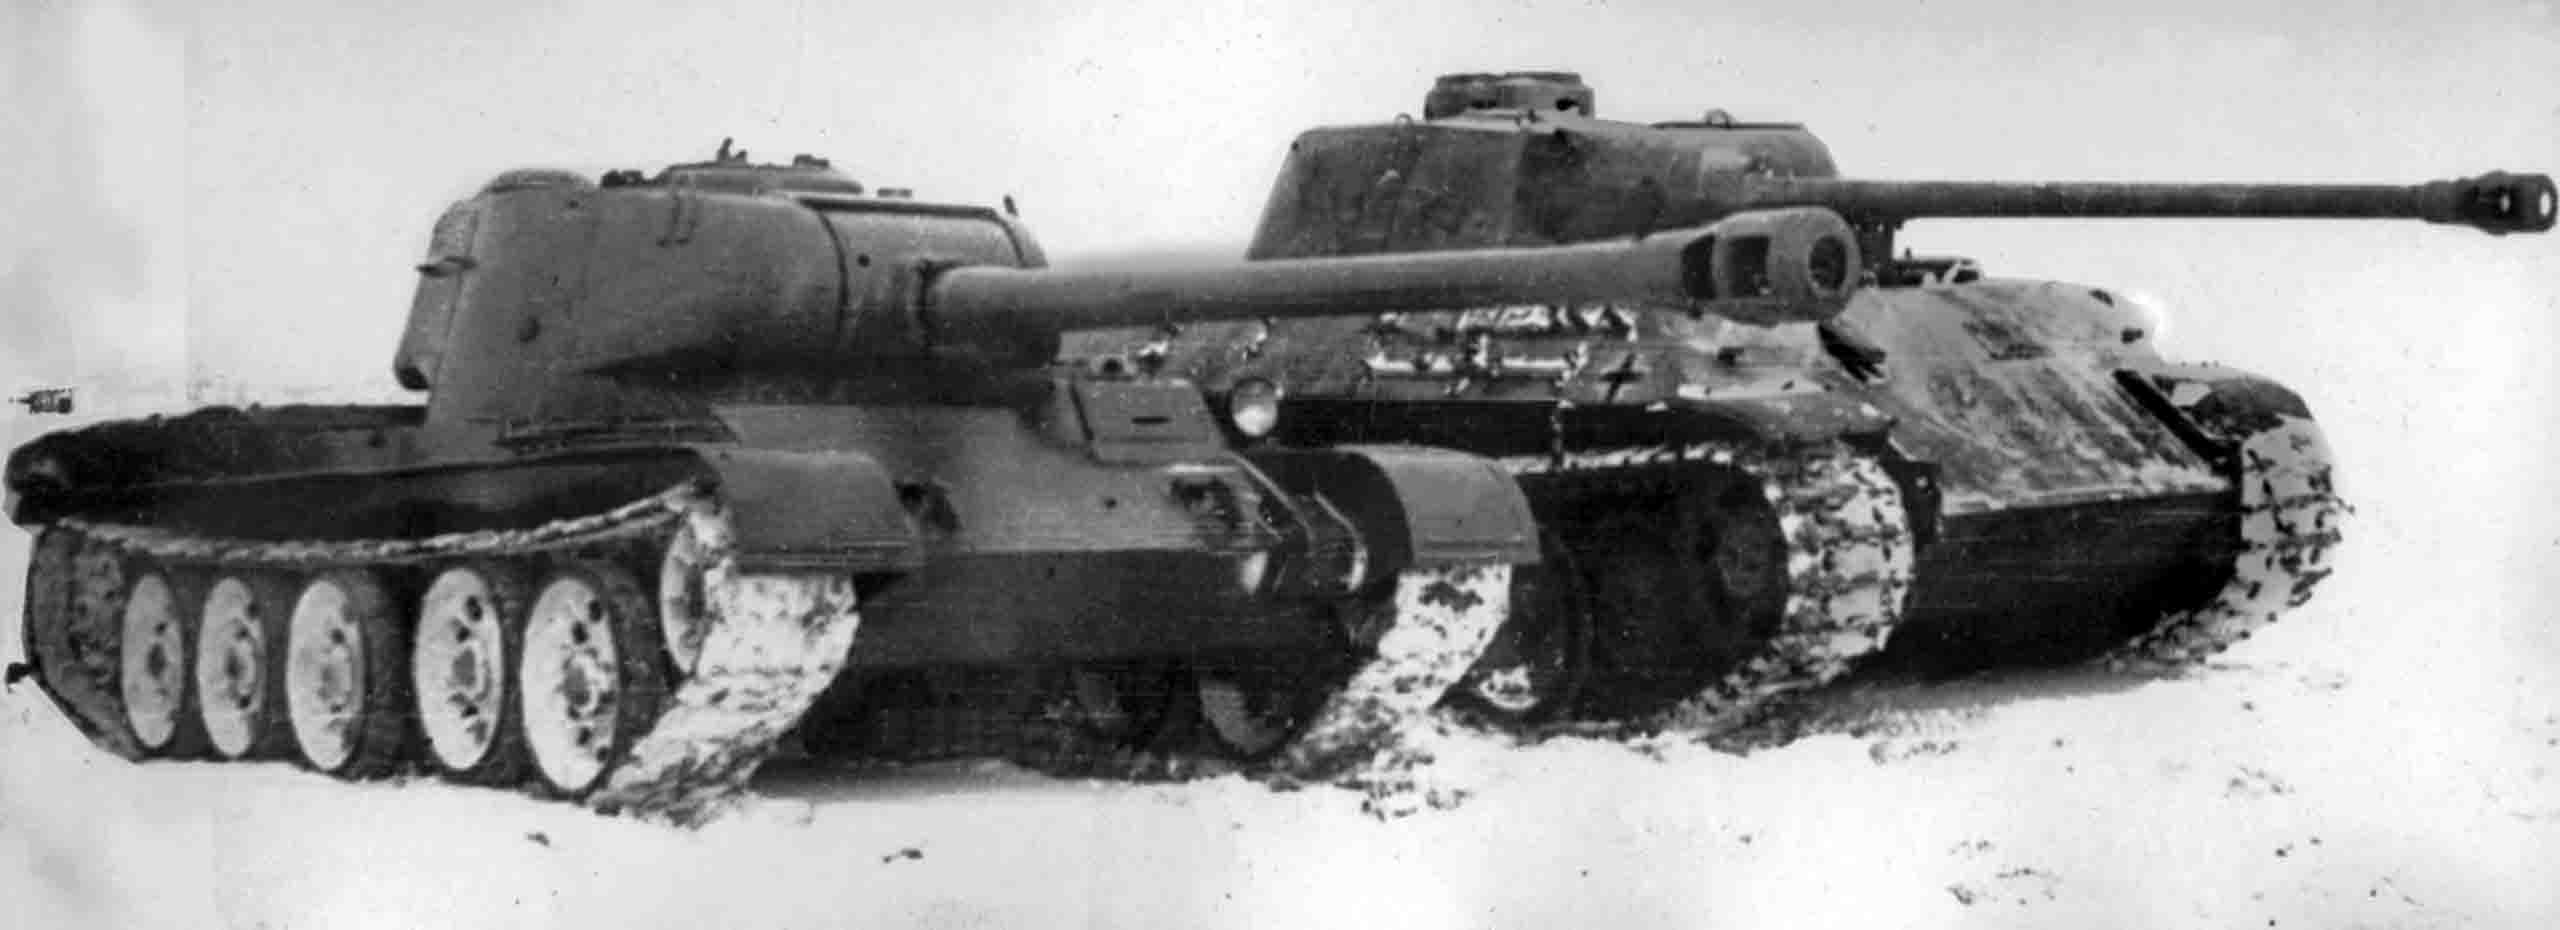 T-44-122, PzKpfw V Panther